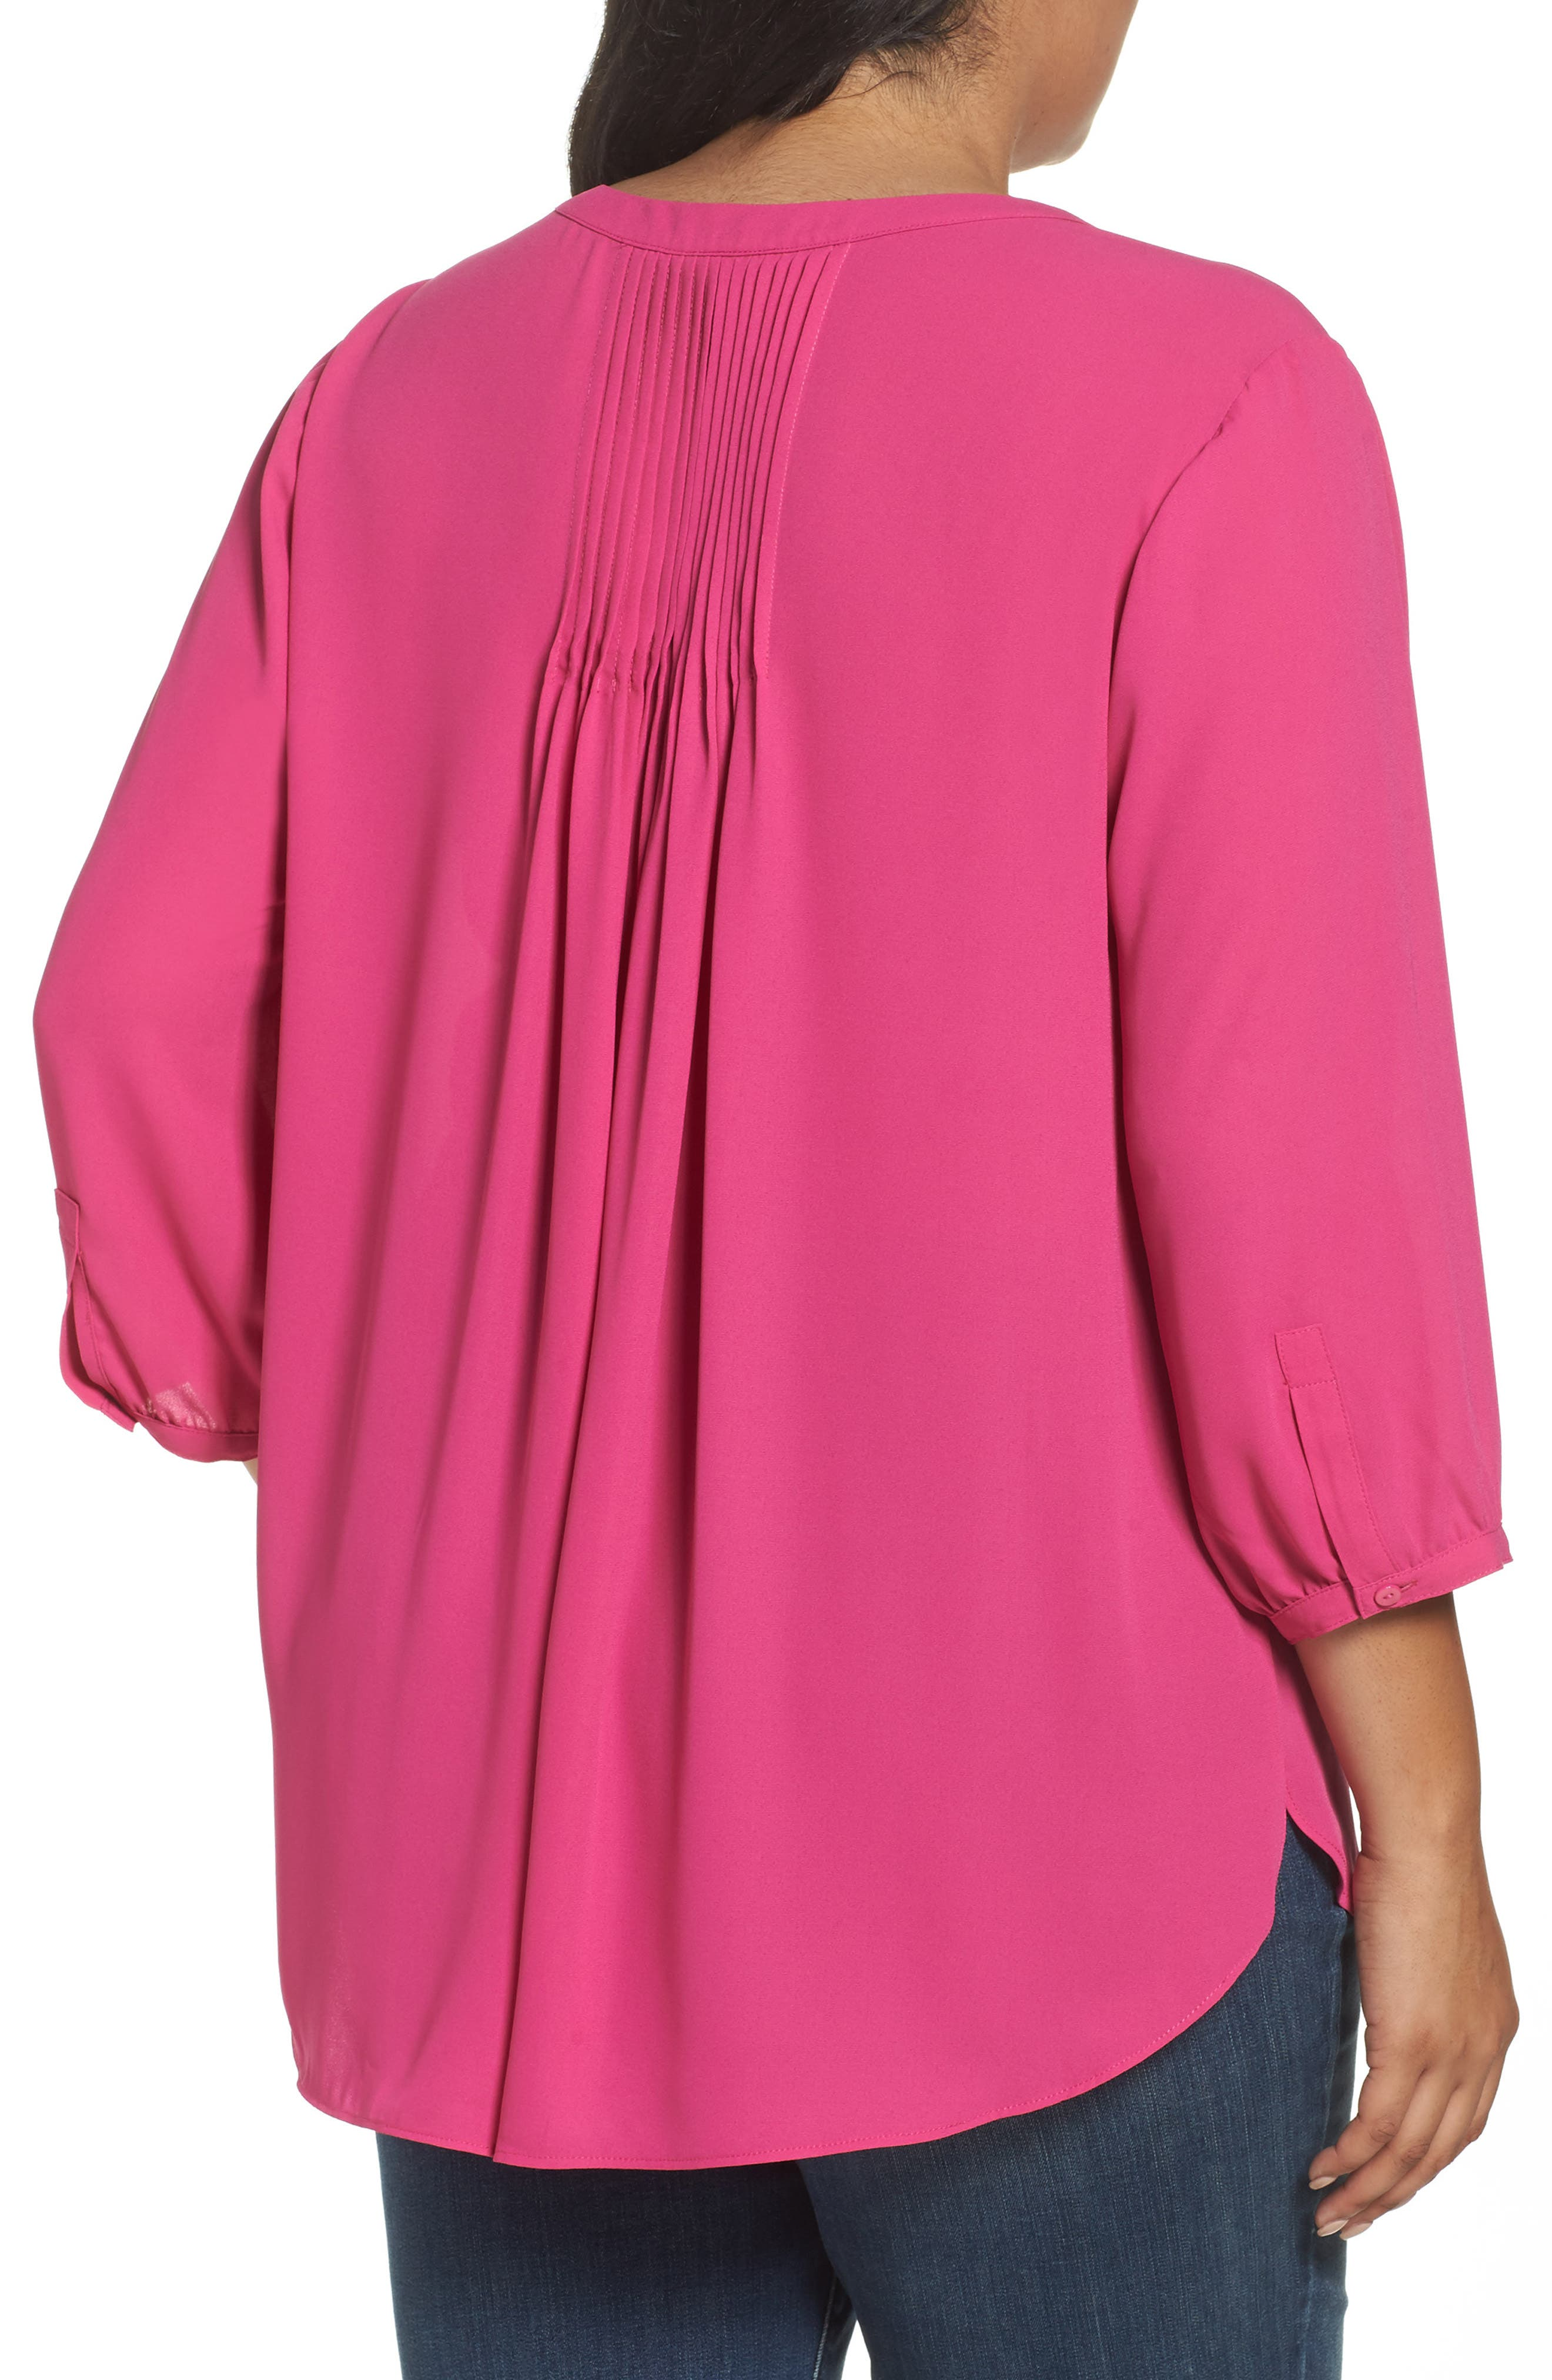 Alternate Image 2  - NYDJ High/Low Blouse (Plus Size)